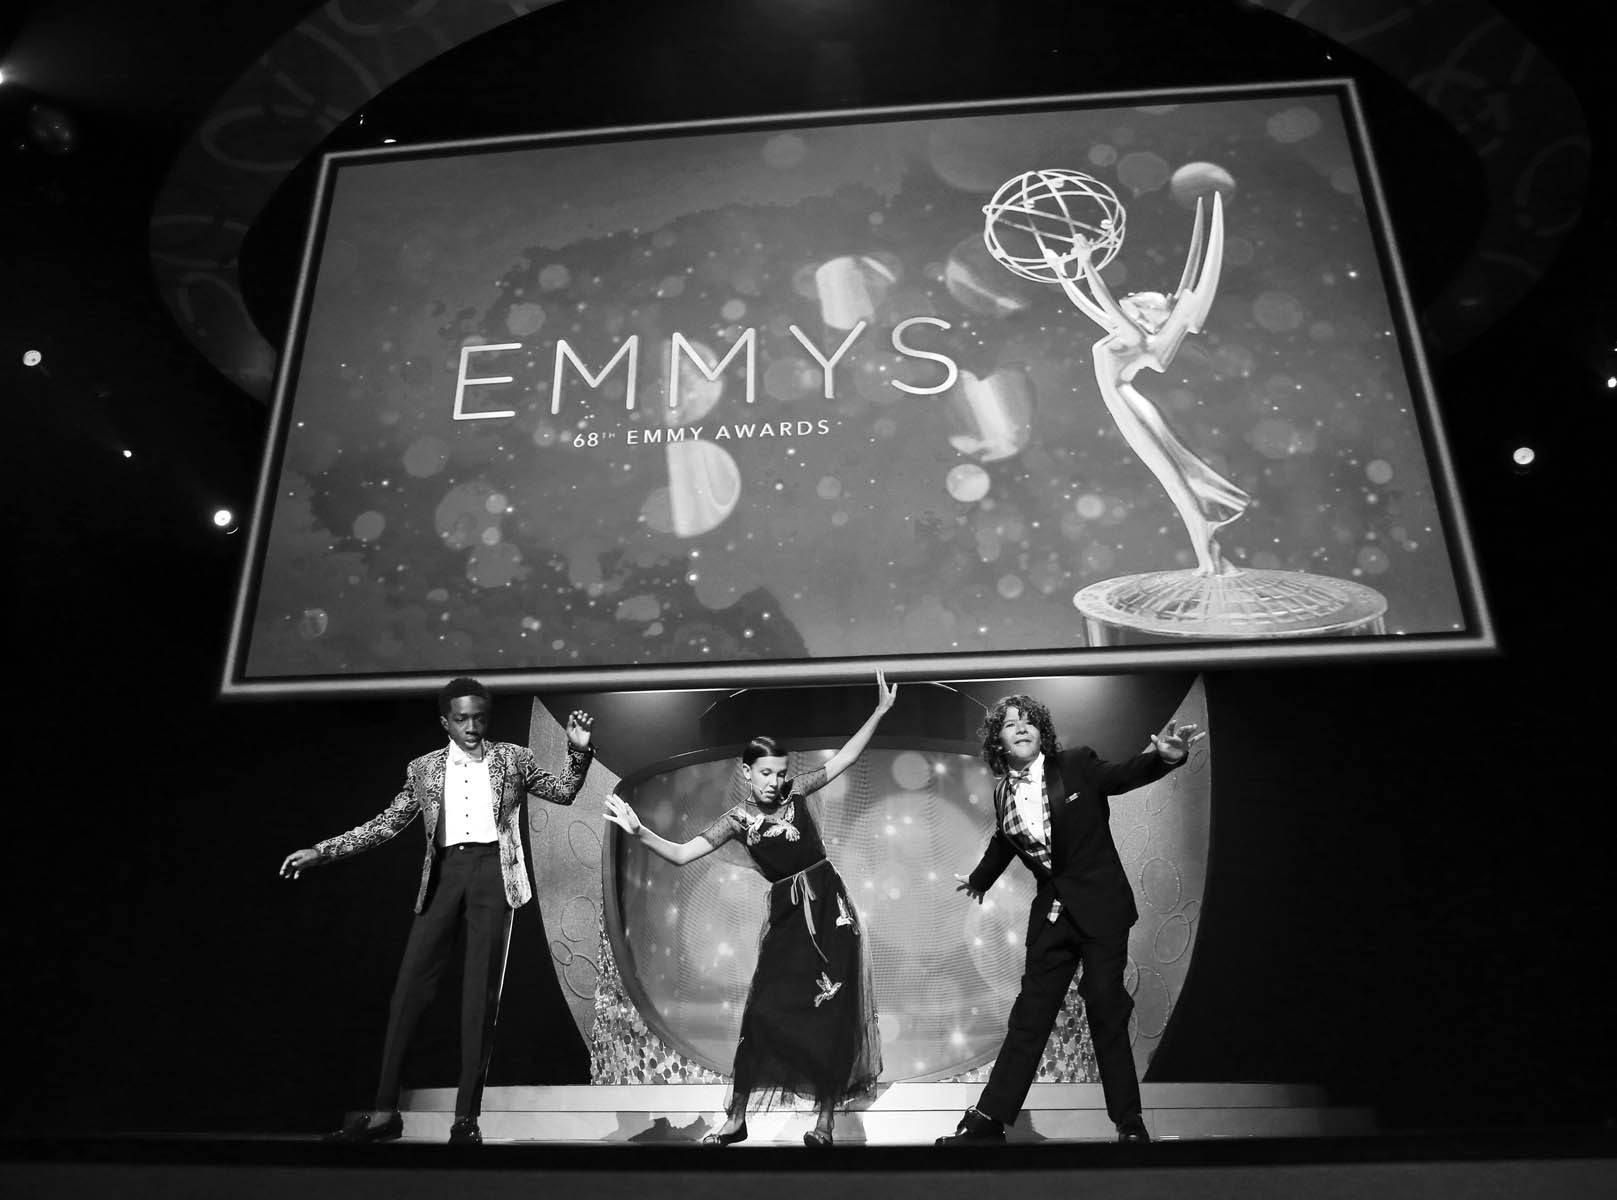 Caleb McLaughlin, from left, Millie Bobby Brown and Gaten Matarazzo at the 68th Primetime Emmy Awards on Sunday, Sept. 18, 2016, at the Microsoft Theater in Los Angeles. (Photo by Matt Sayles/Invision for the Television Academy/AP Images)